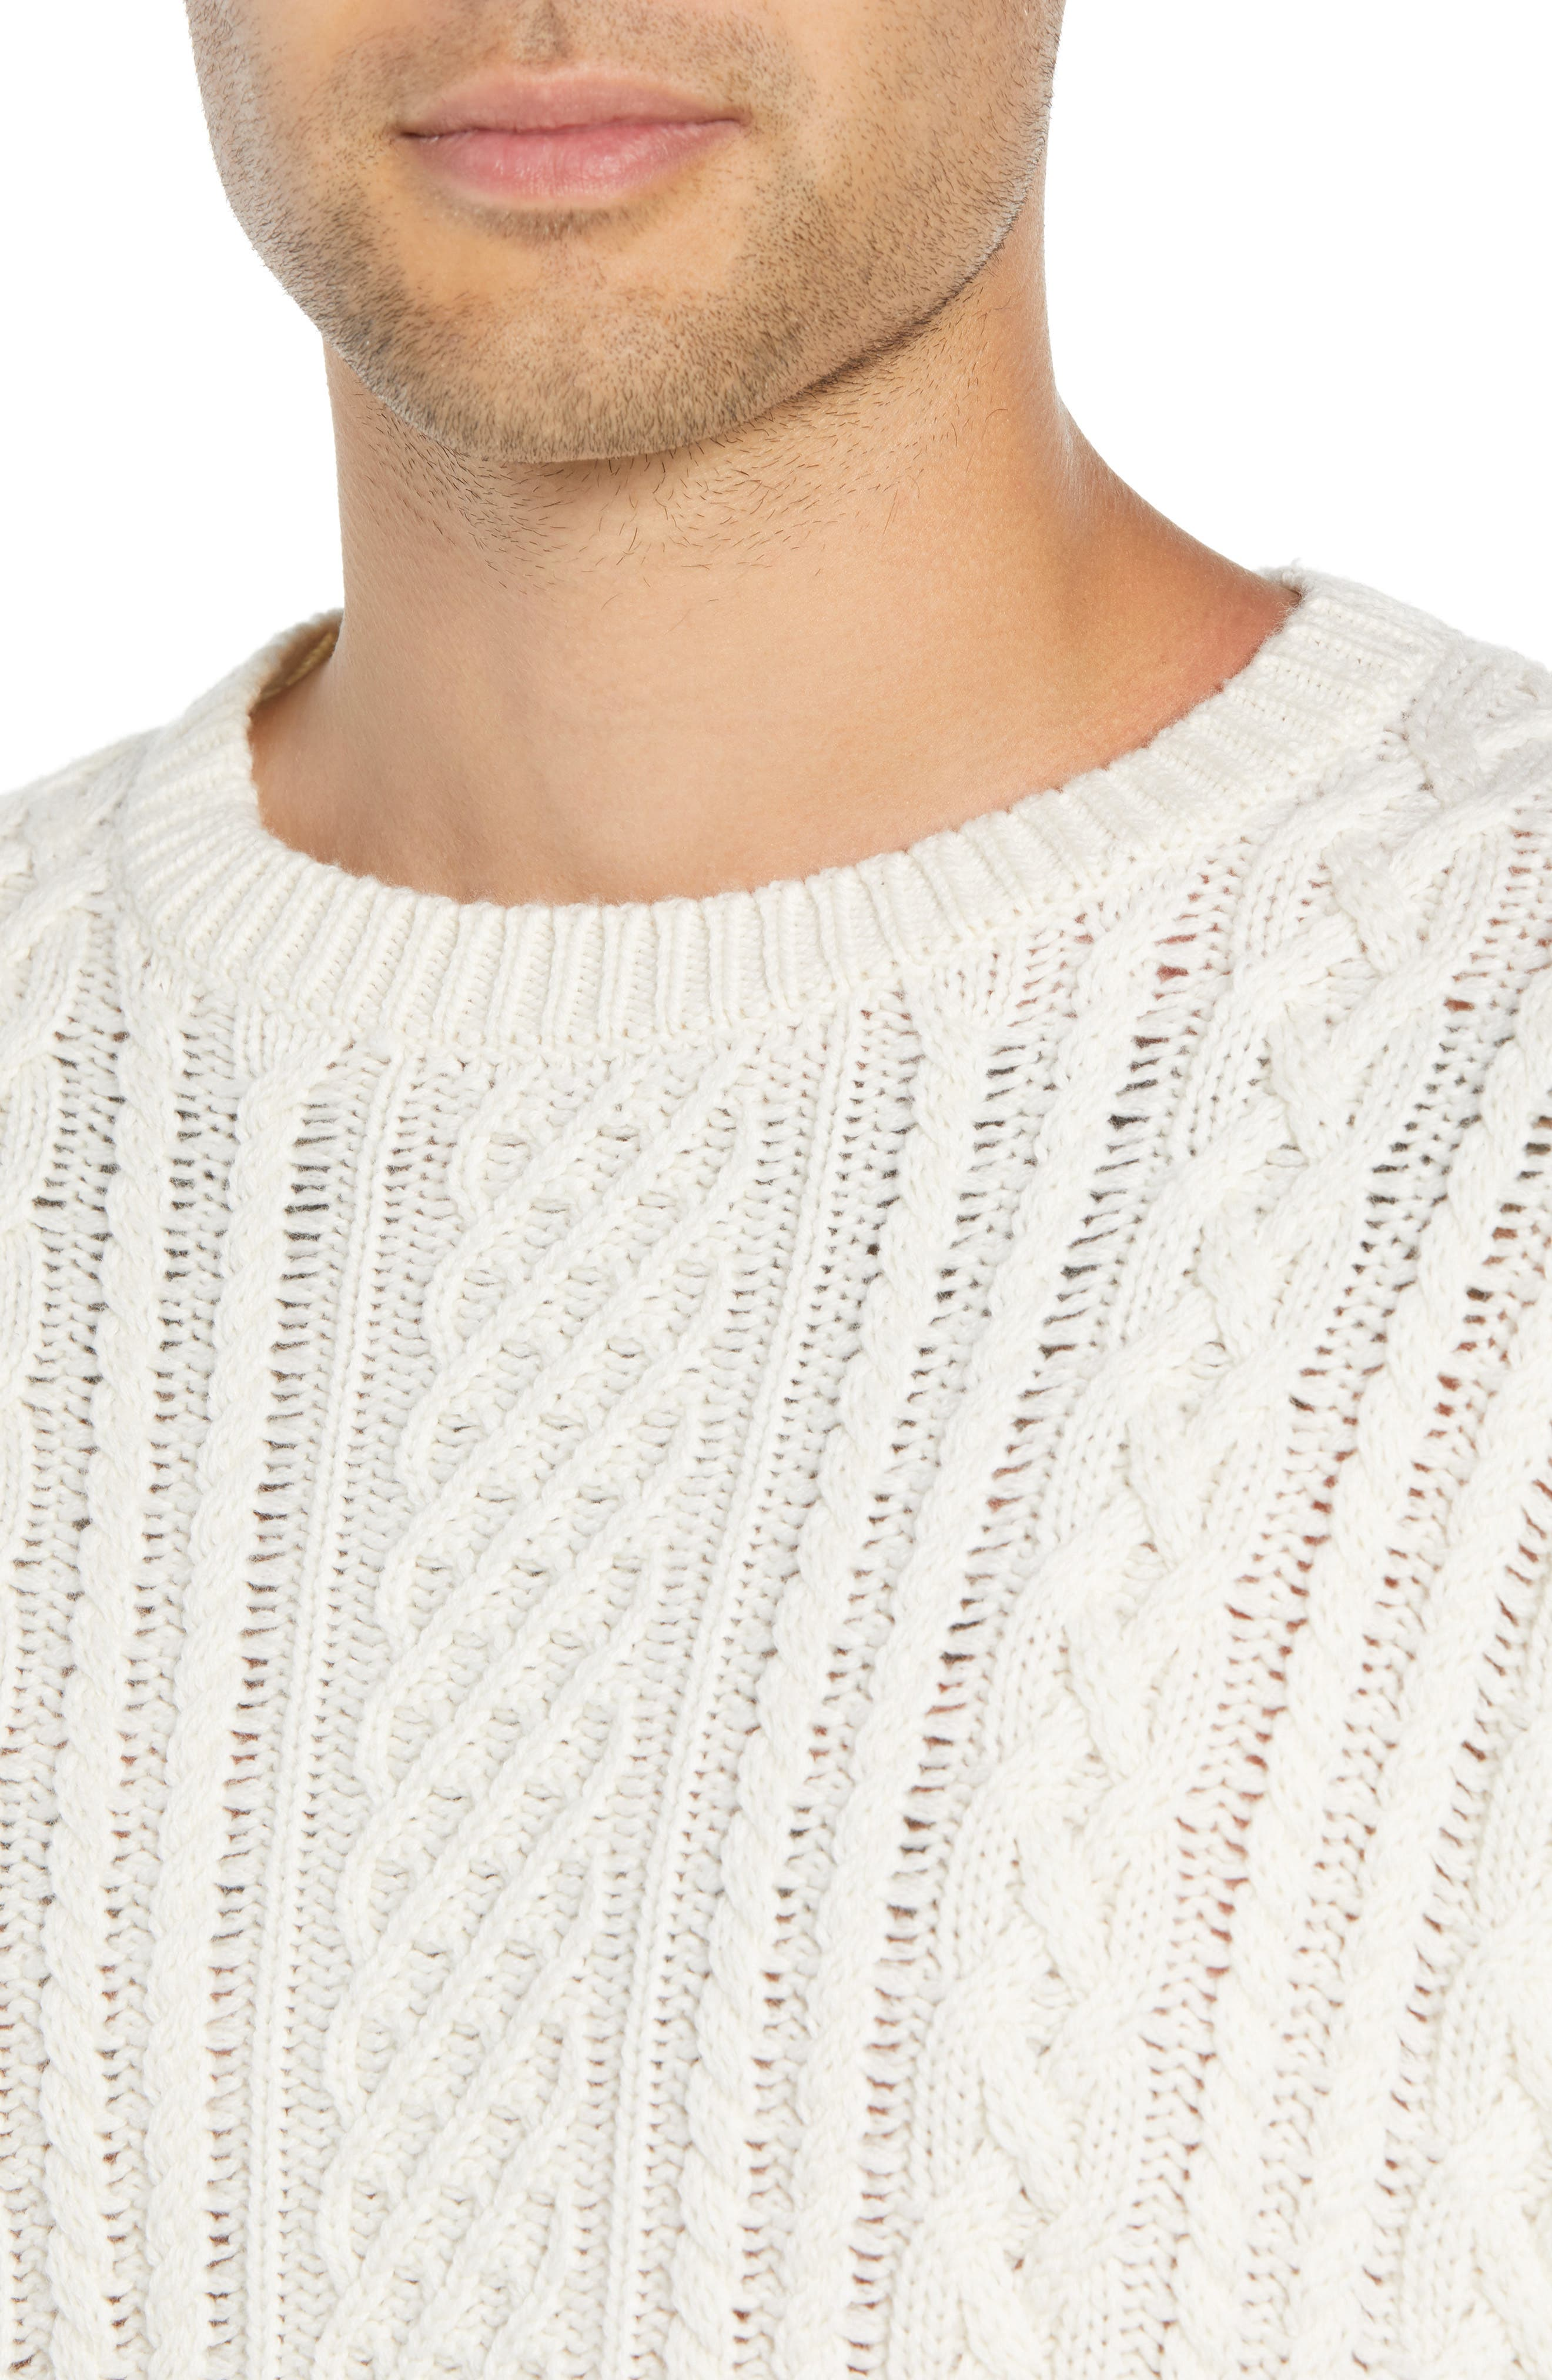 Oversize Distressed Wool Blend Sweater,                             Alternate thumbnail 4, color,                             BEIGE/ WHITE